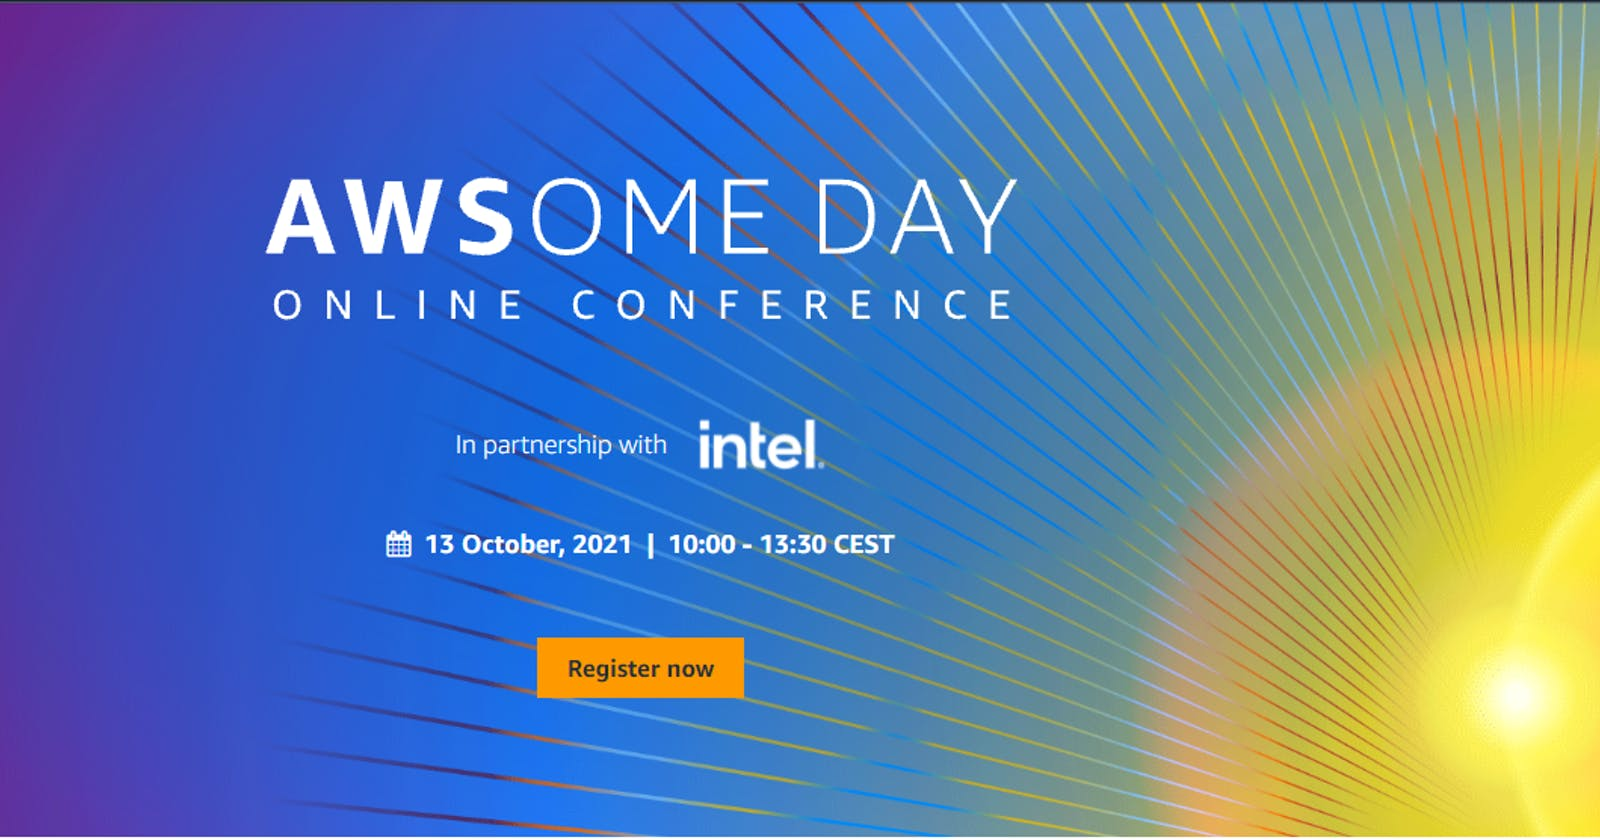 AWSome Day Online Conference